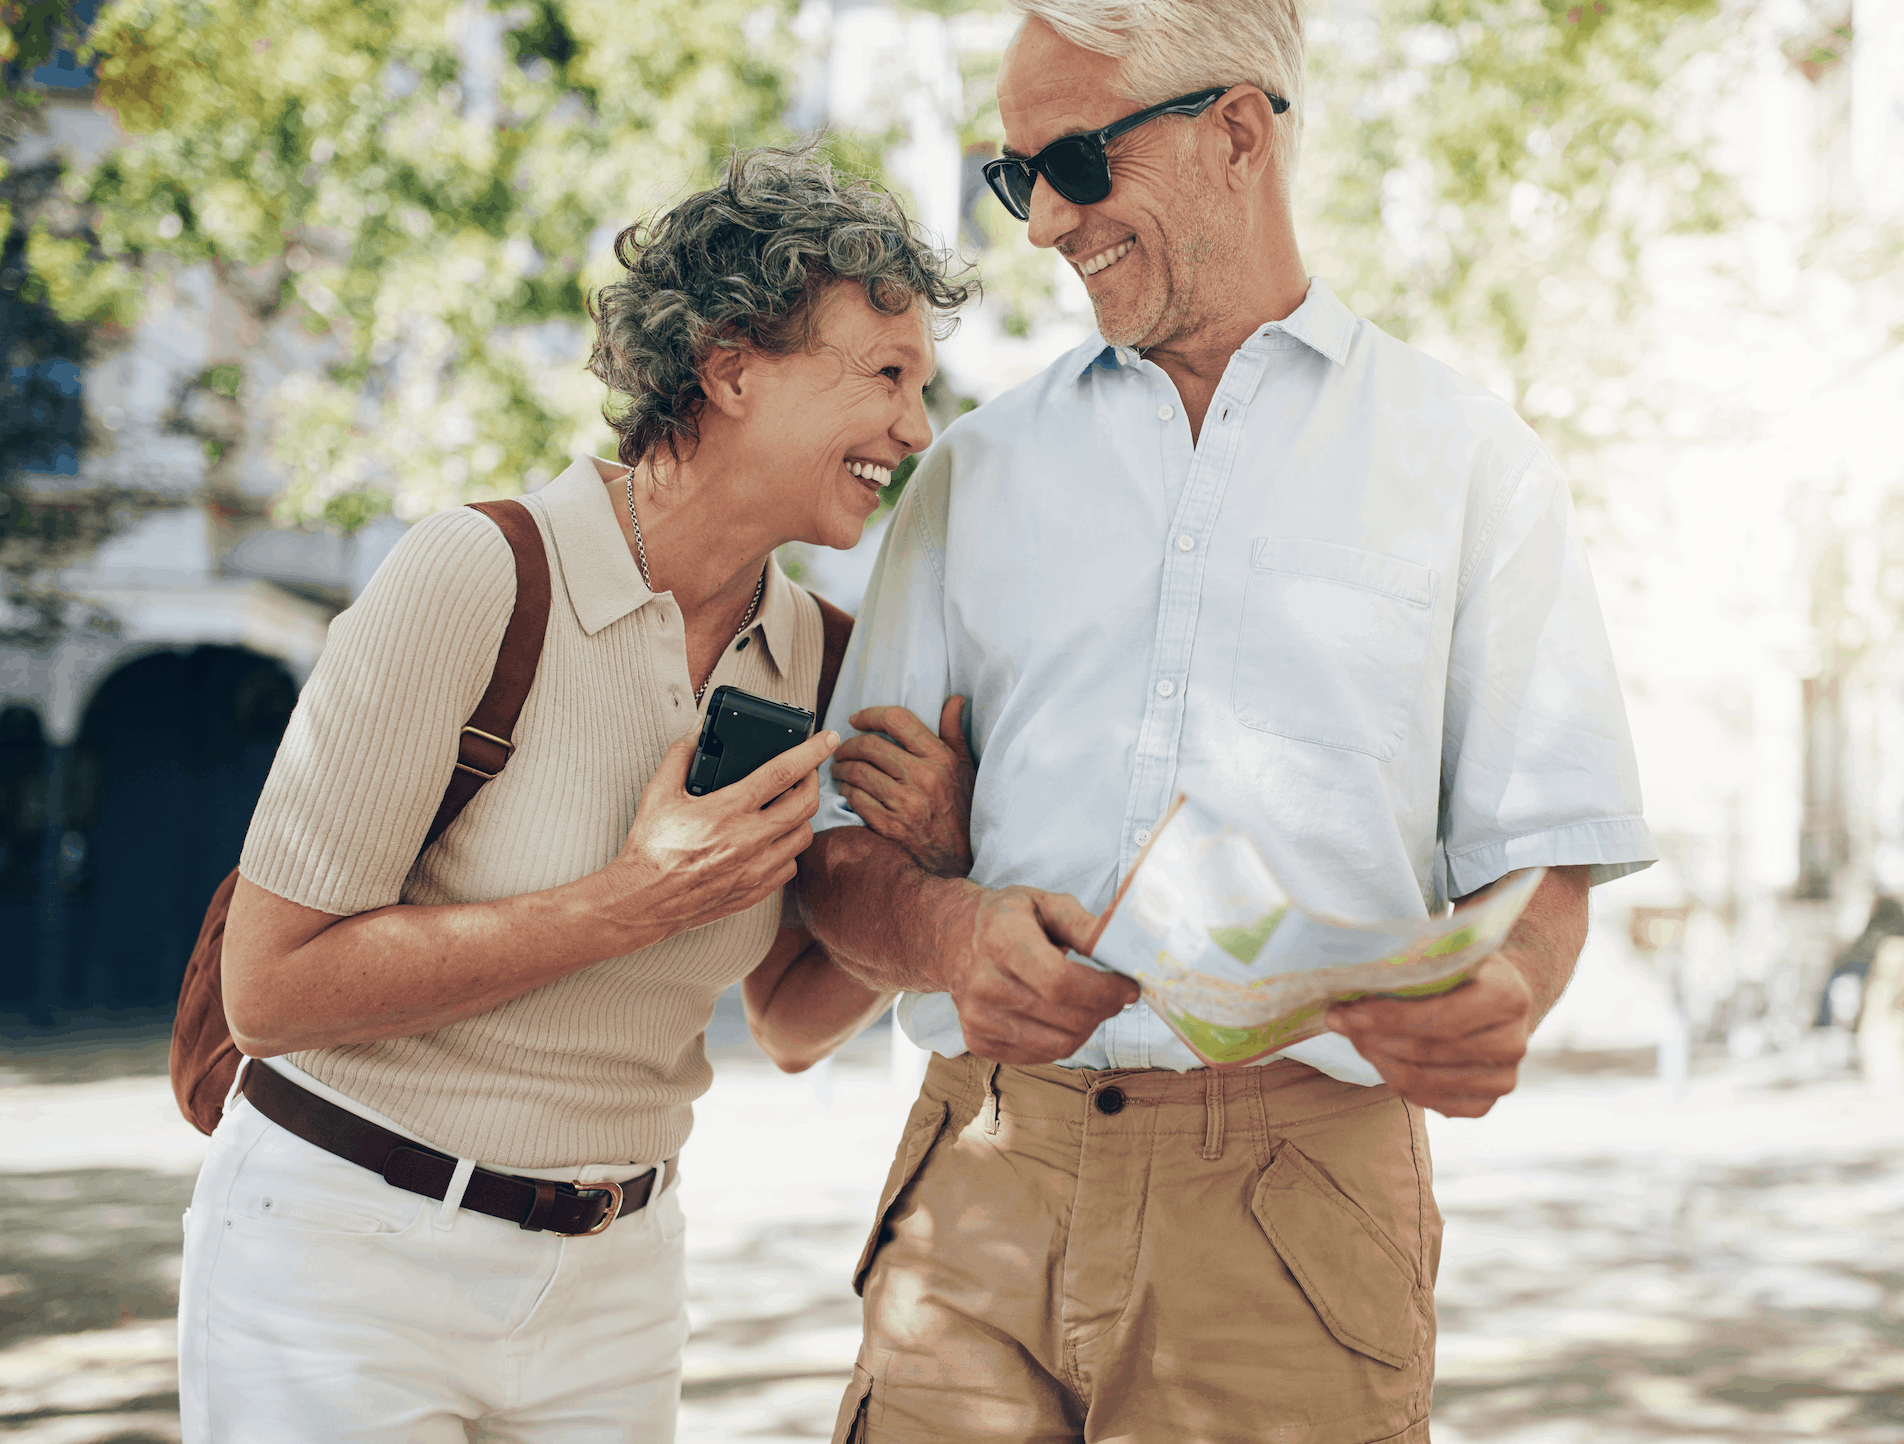 jobs for retired couples abroad